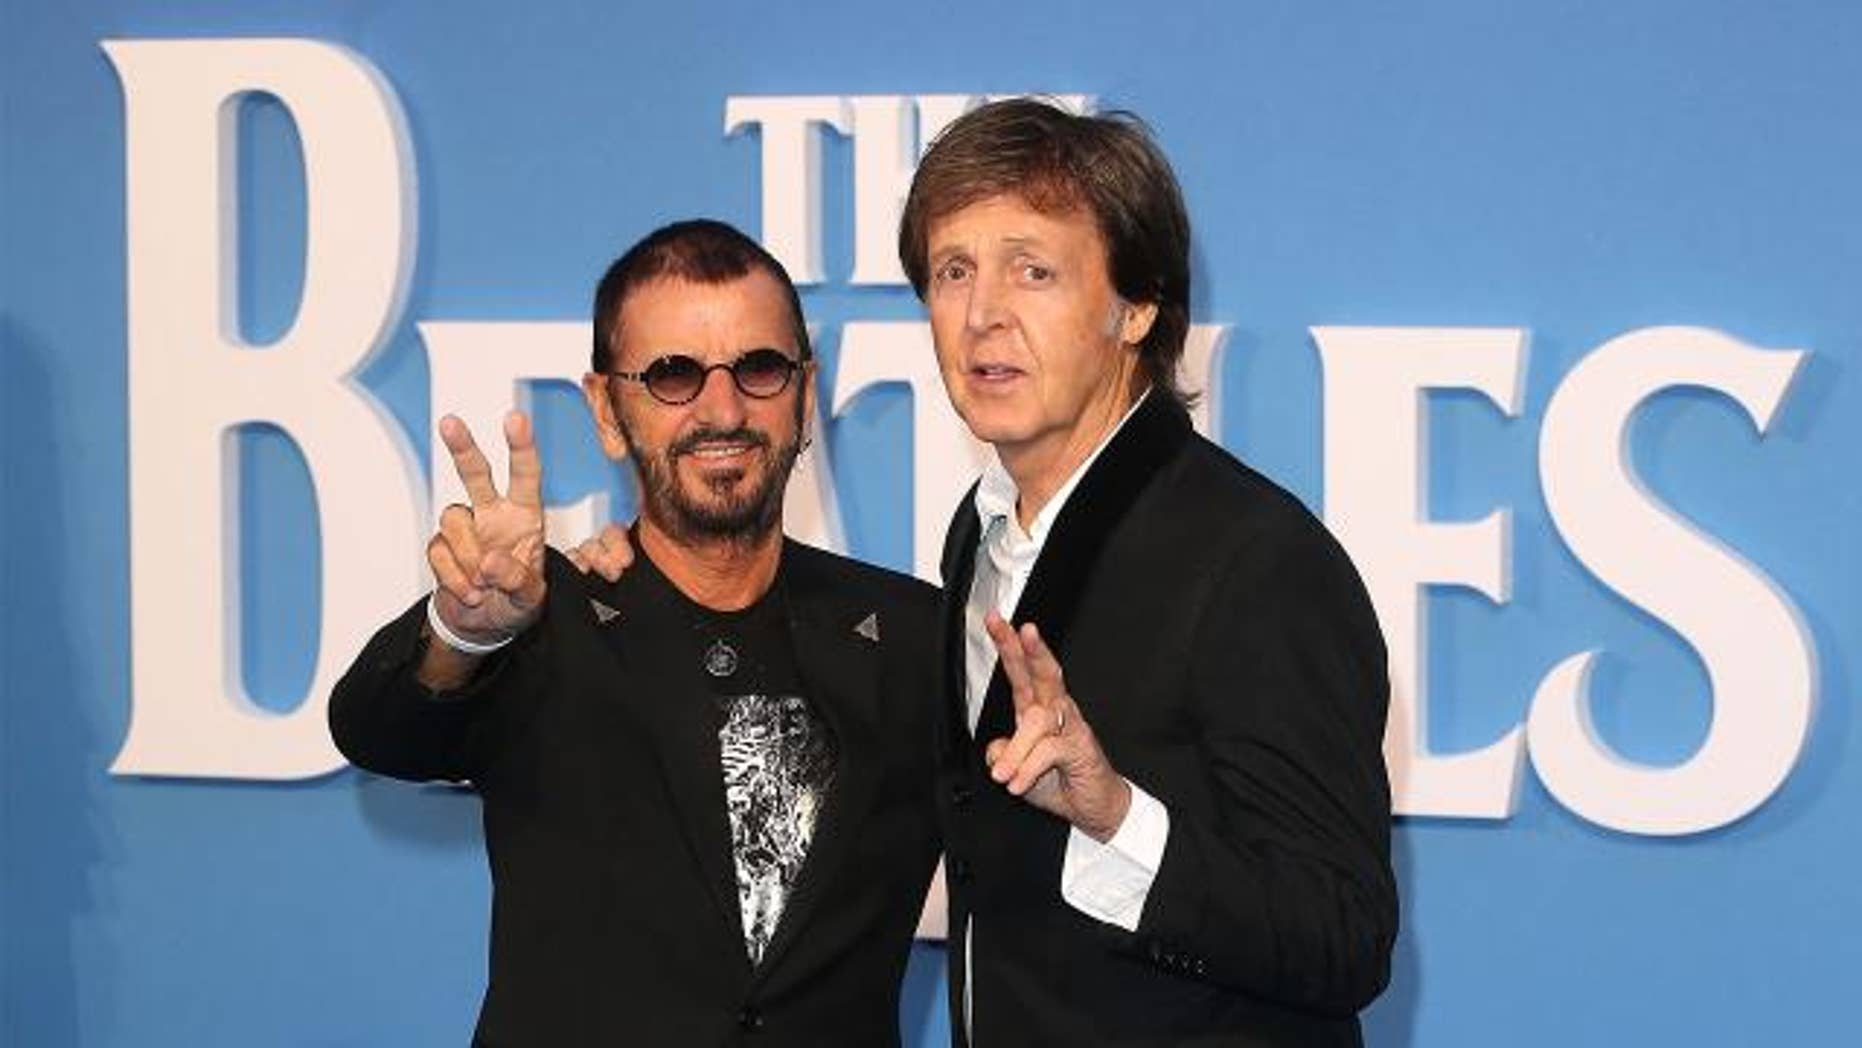 Ringo Starr and Paul McCartney reunited in London for a new Beatles documentary